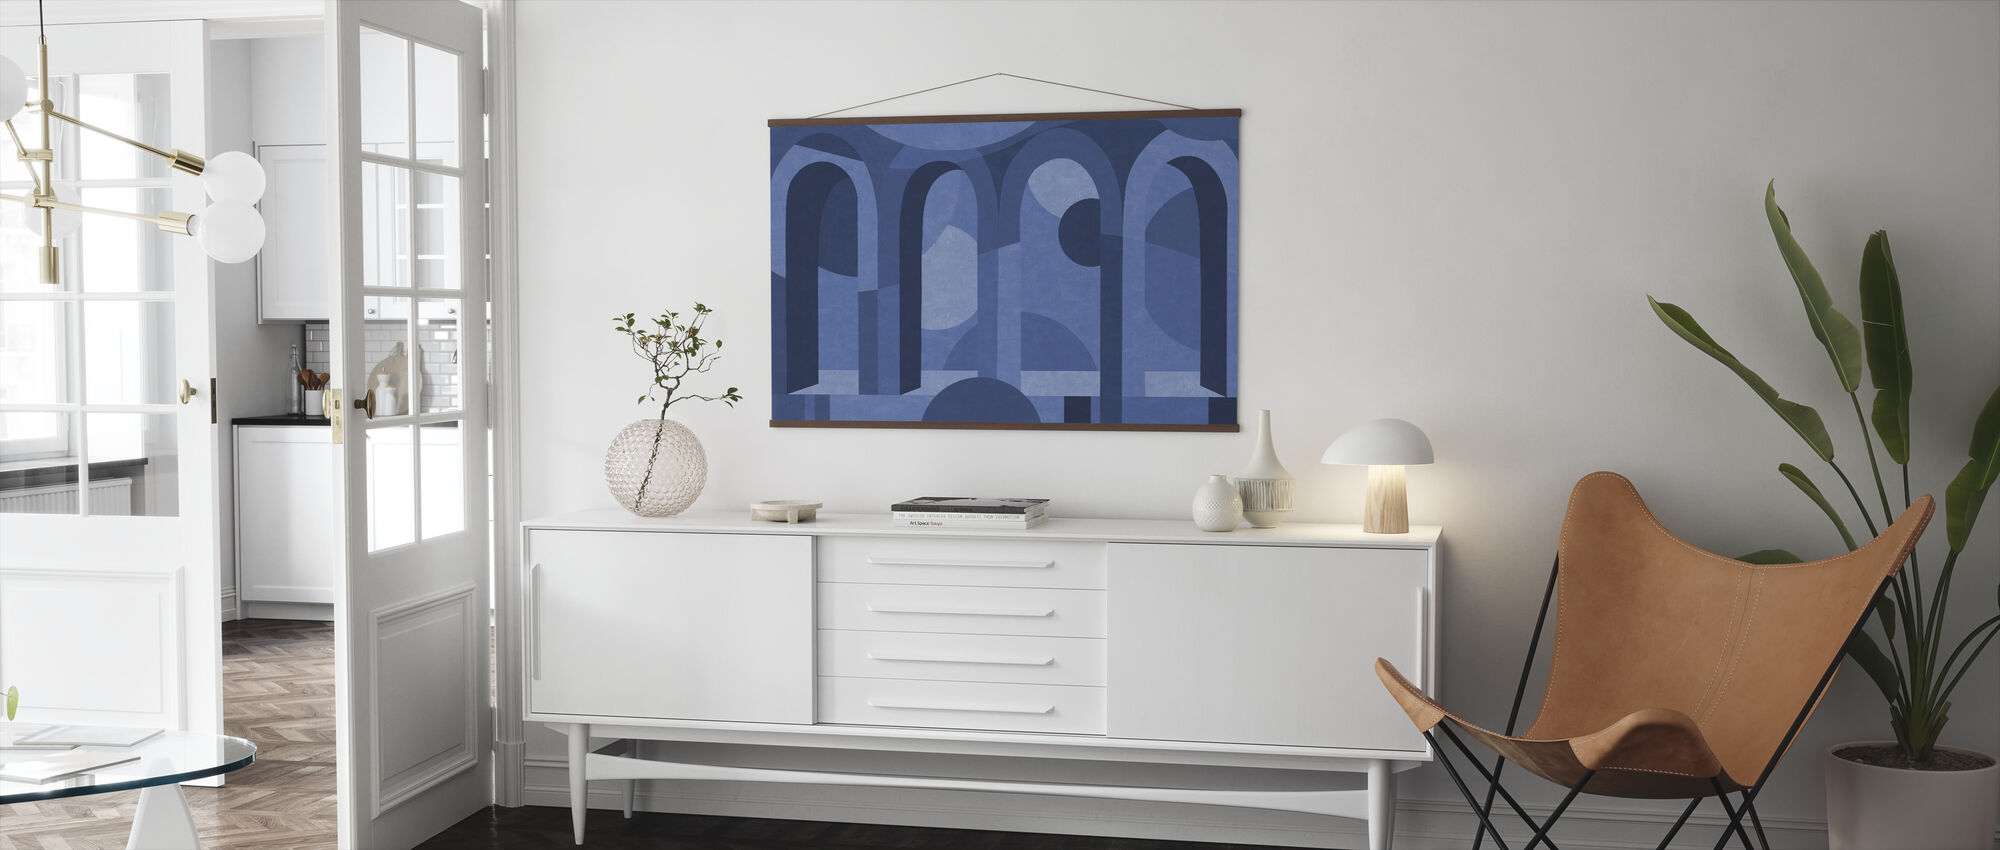 Archform - Shades of Blue - Poster - Living Room